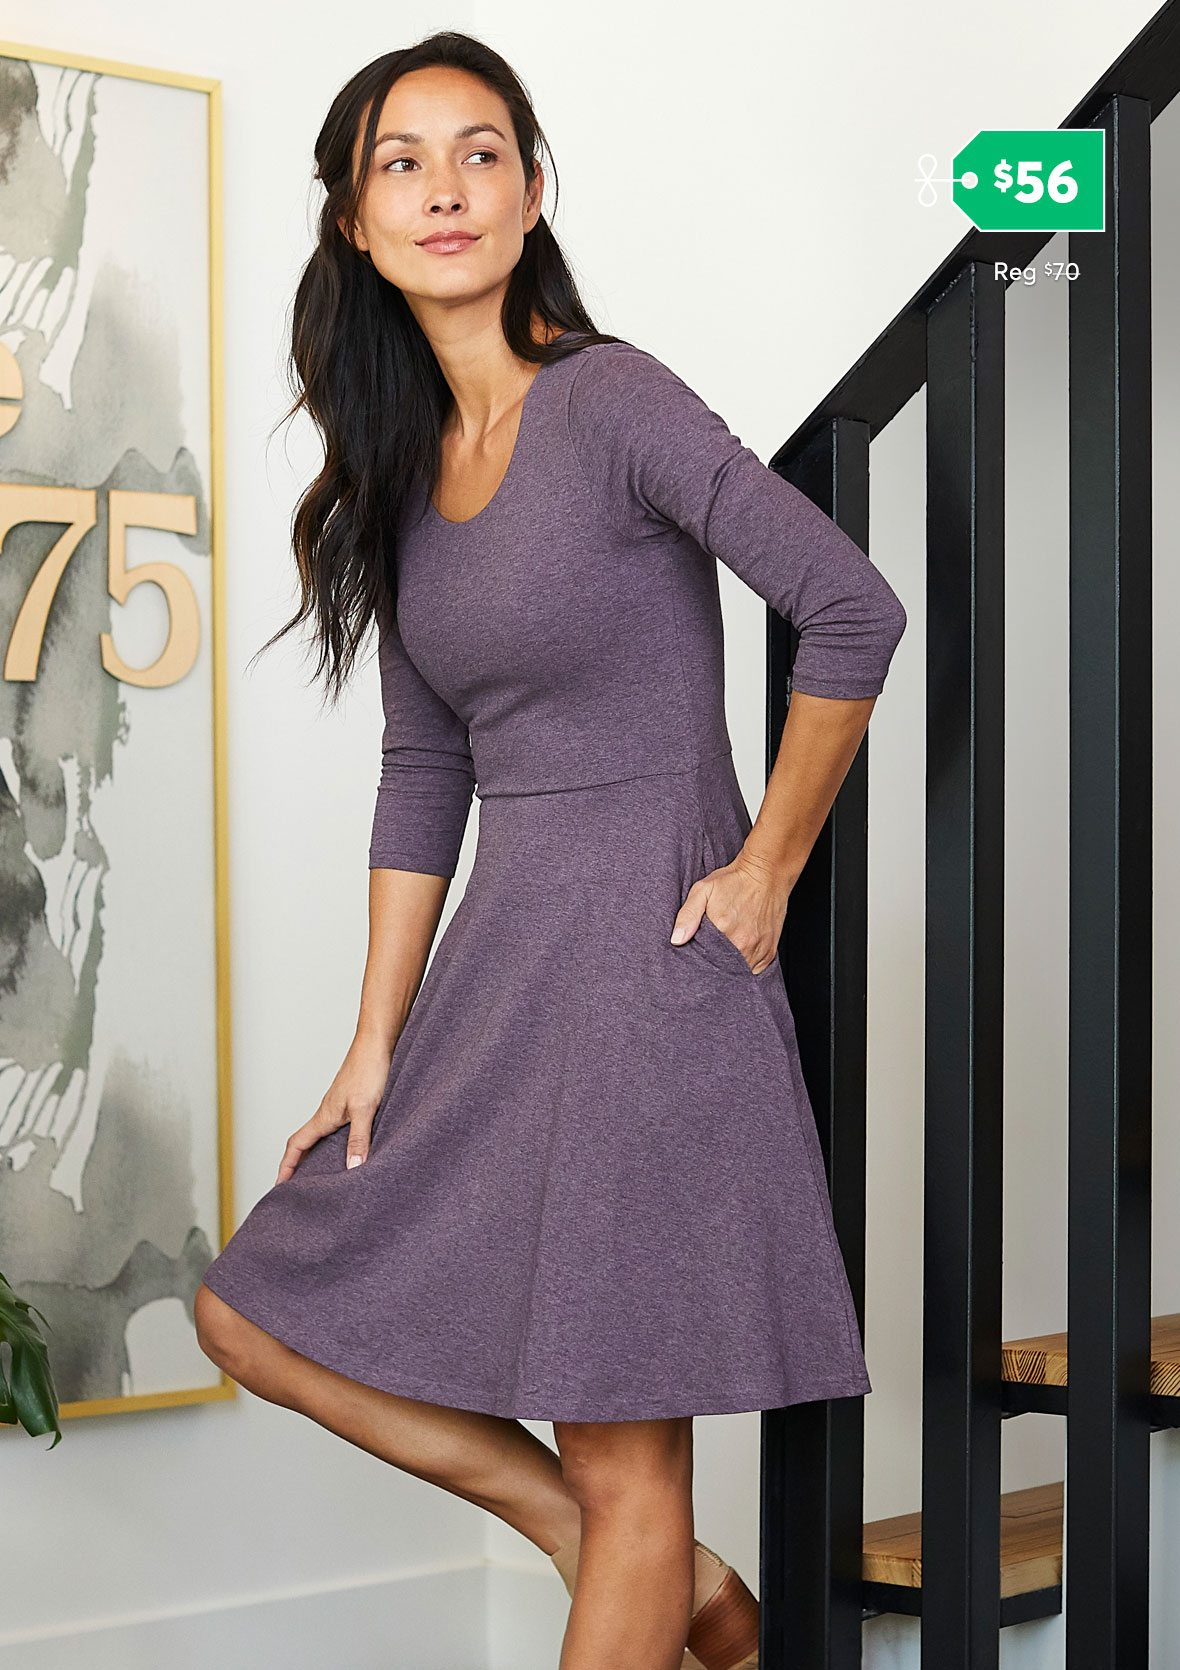 3/4 Sleeve Fit and Flare Dress $56 (reg $70)